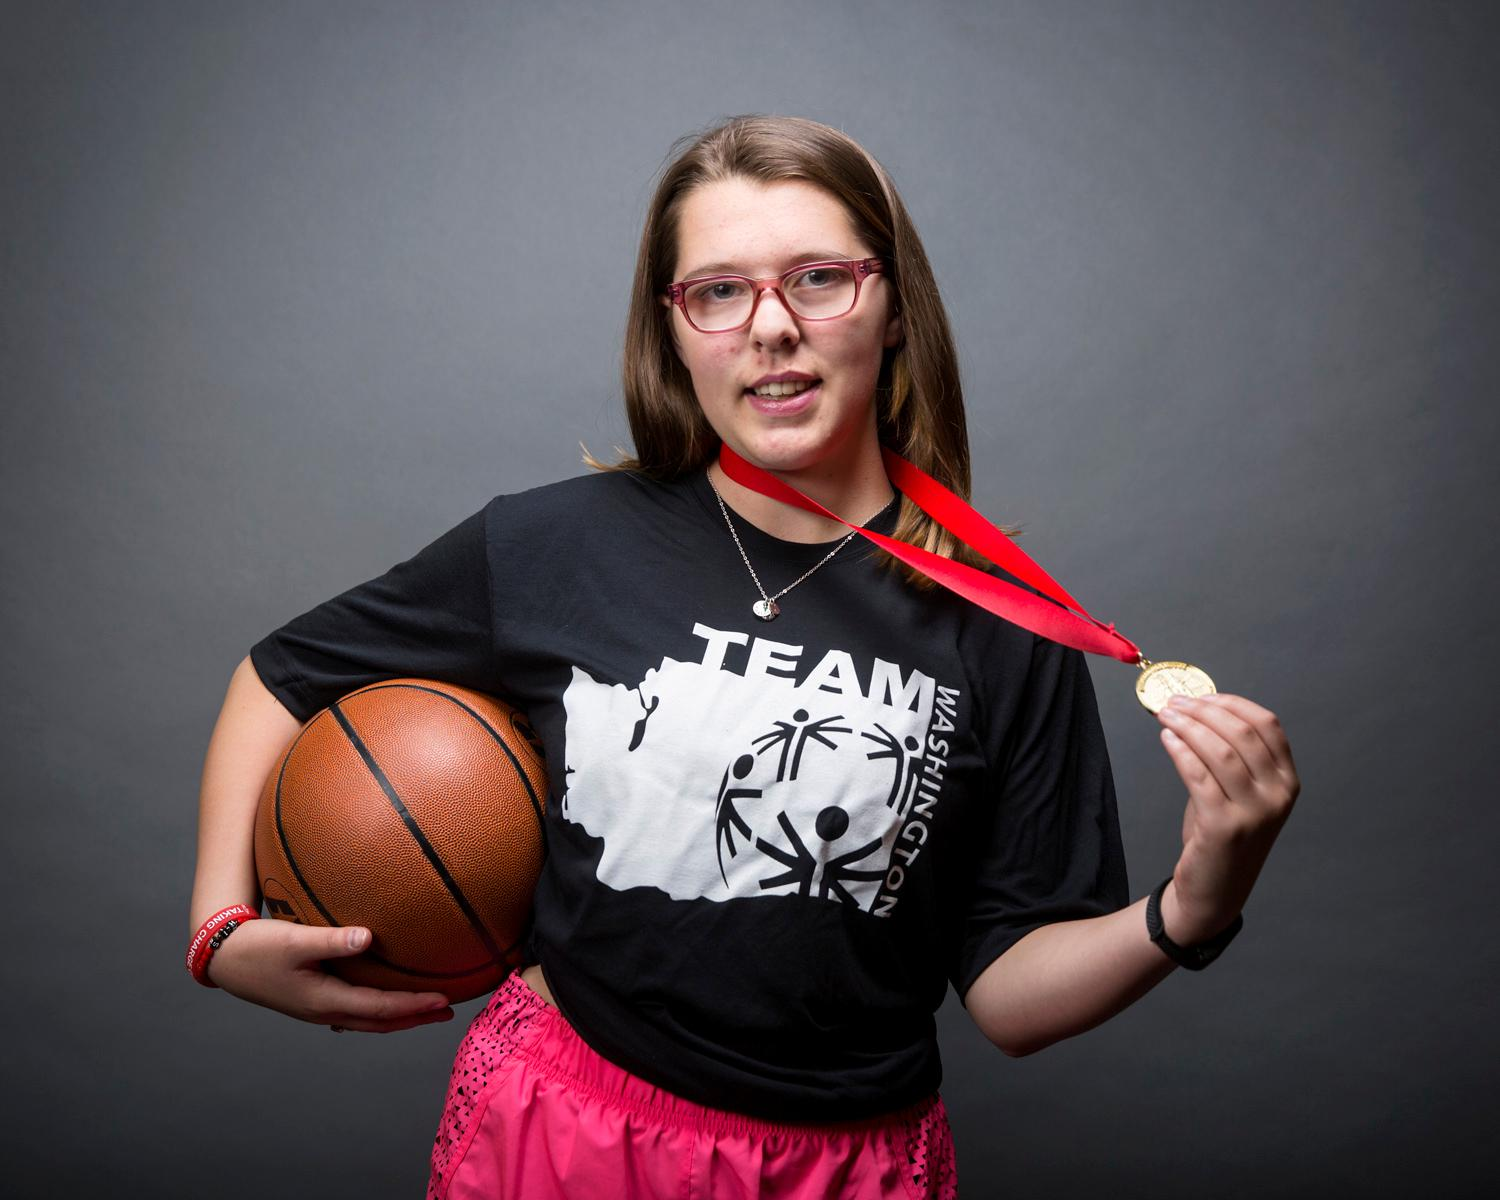 Introducing Kaylee Clark! Kaylee will be competing in Basketball. The Special Olympics USA will take place in Seattle from July 1-6, with a grand opening ceremony and Parade of Athletes and the lighting of the Special Olympics Flame of Hope. (Sy Bean / Seattle Refined)